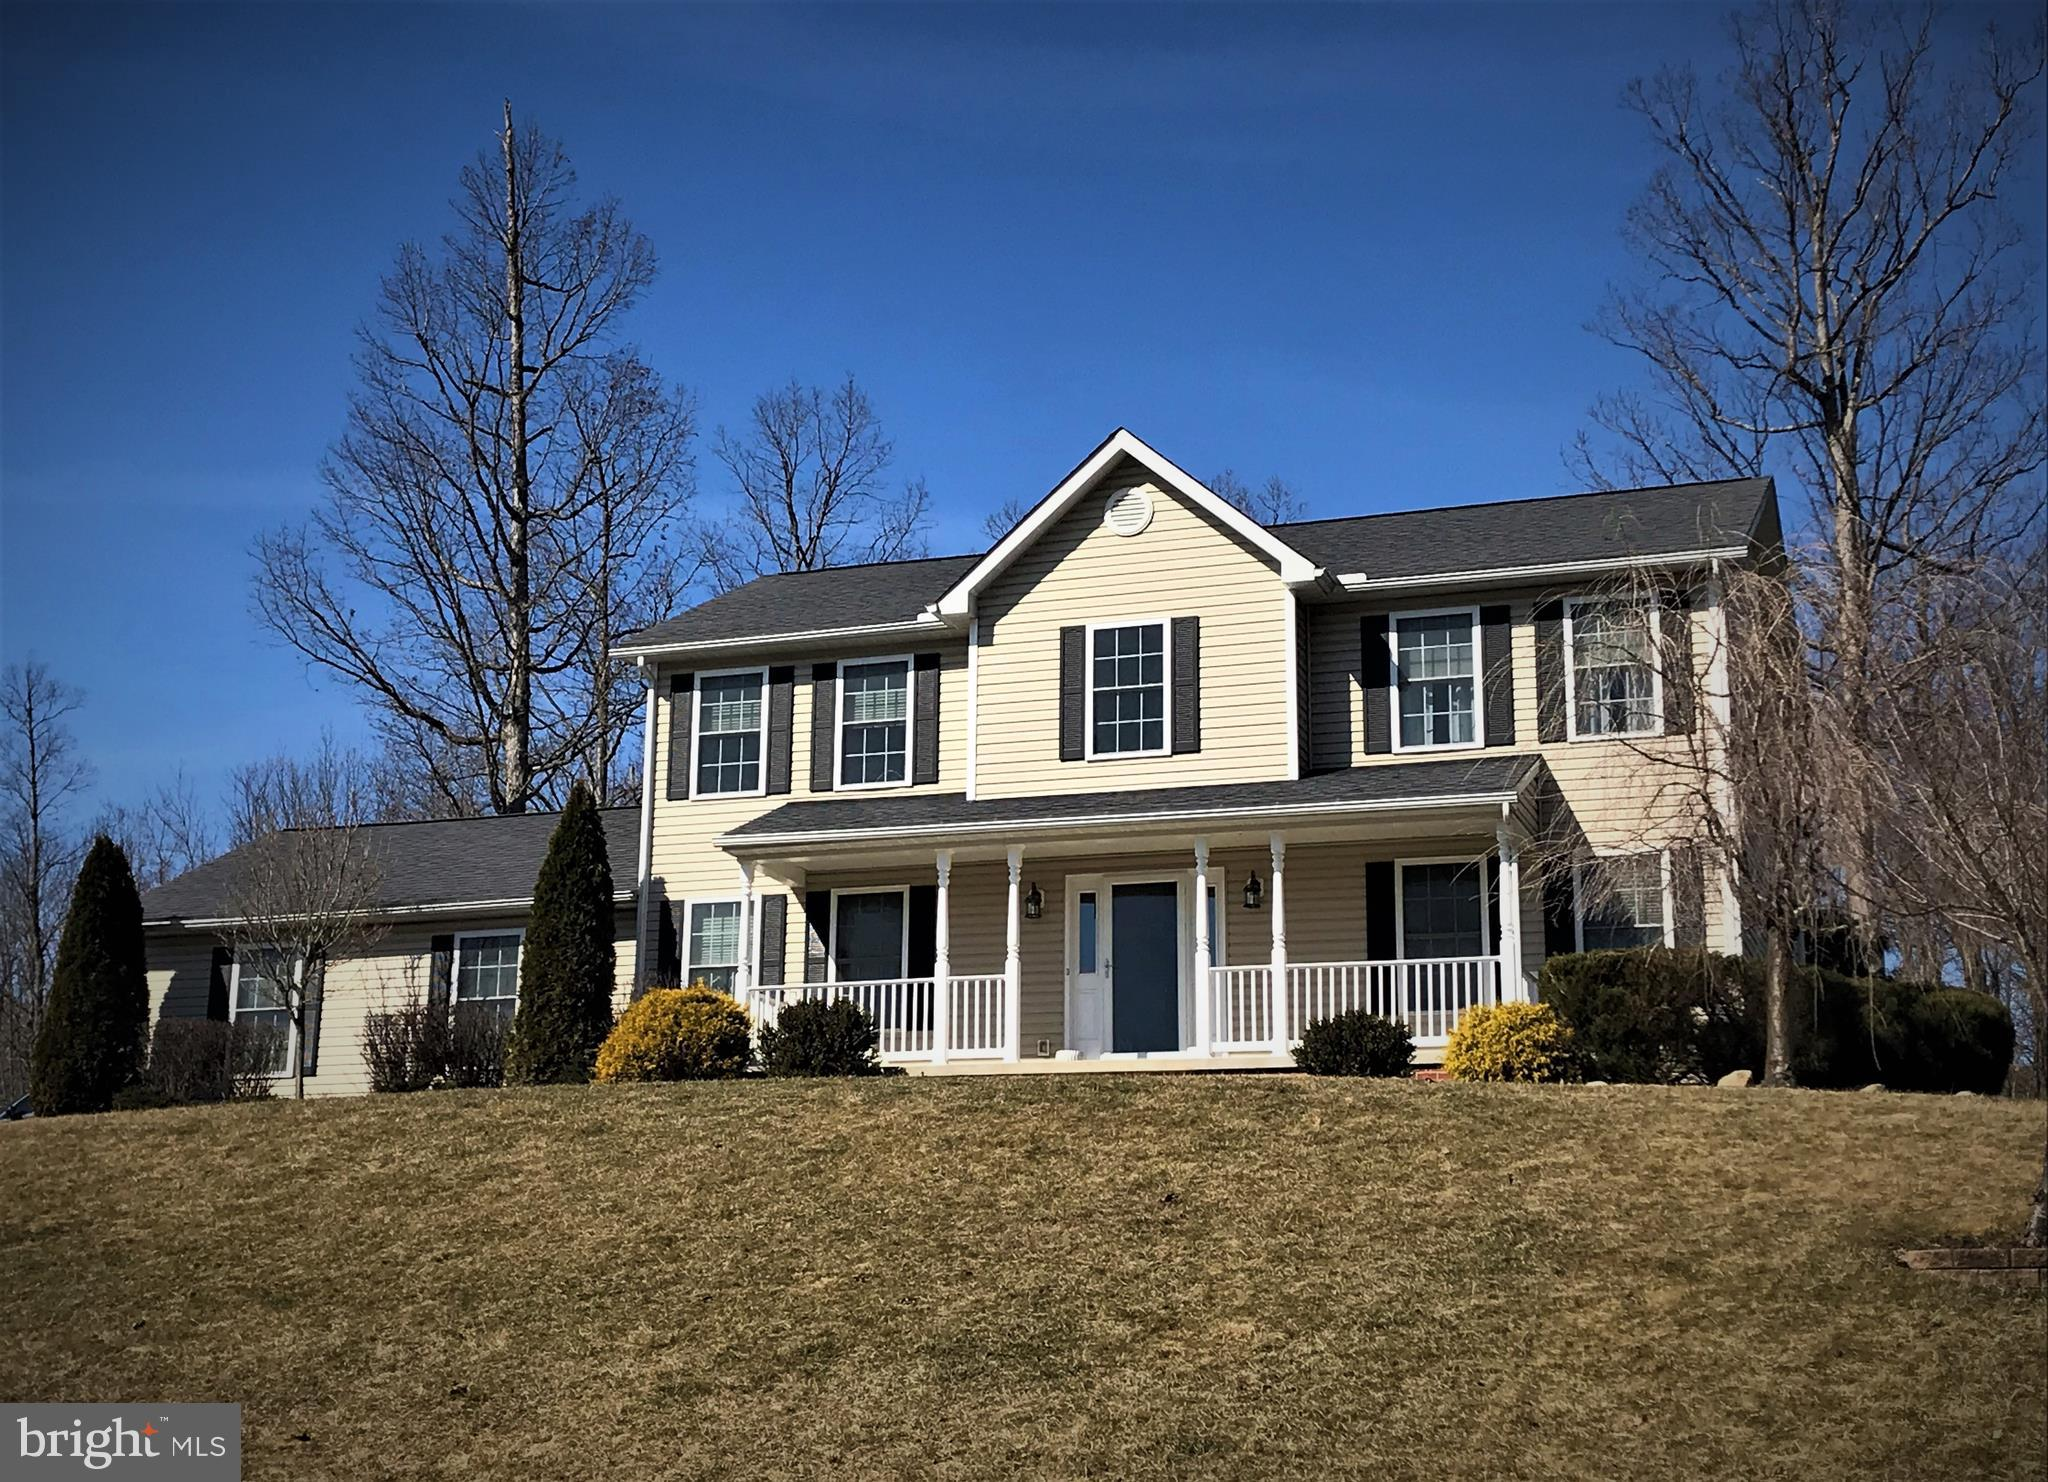 13905 ROLLING OAK DRIVE, ELLERSLIE, MD 21529